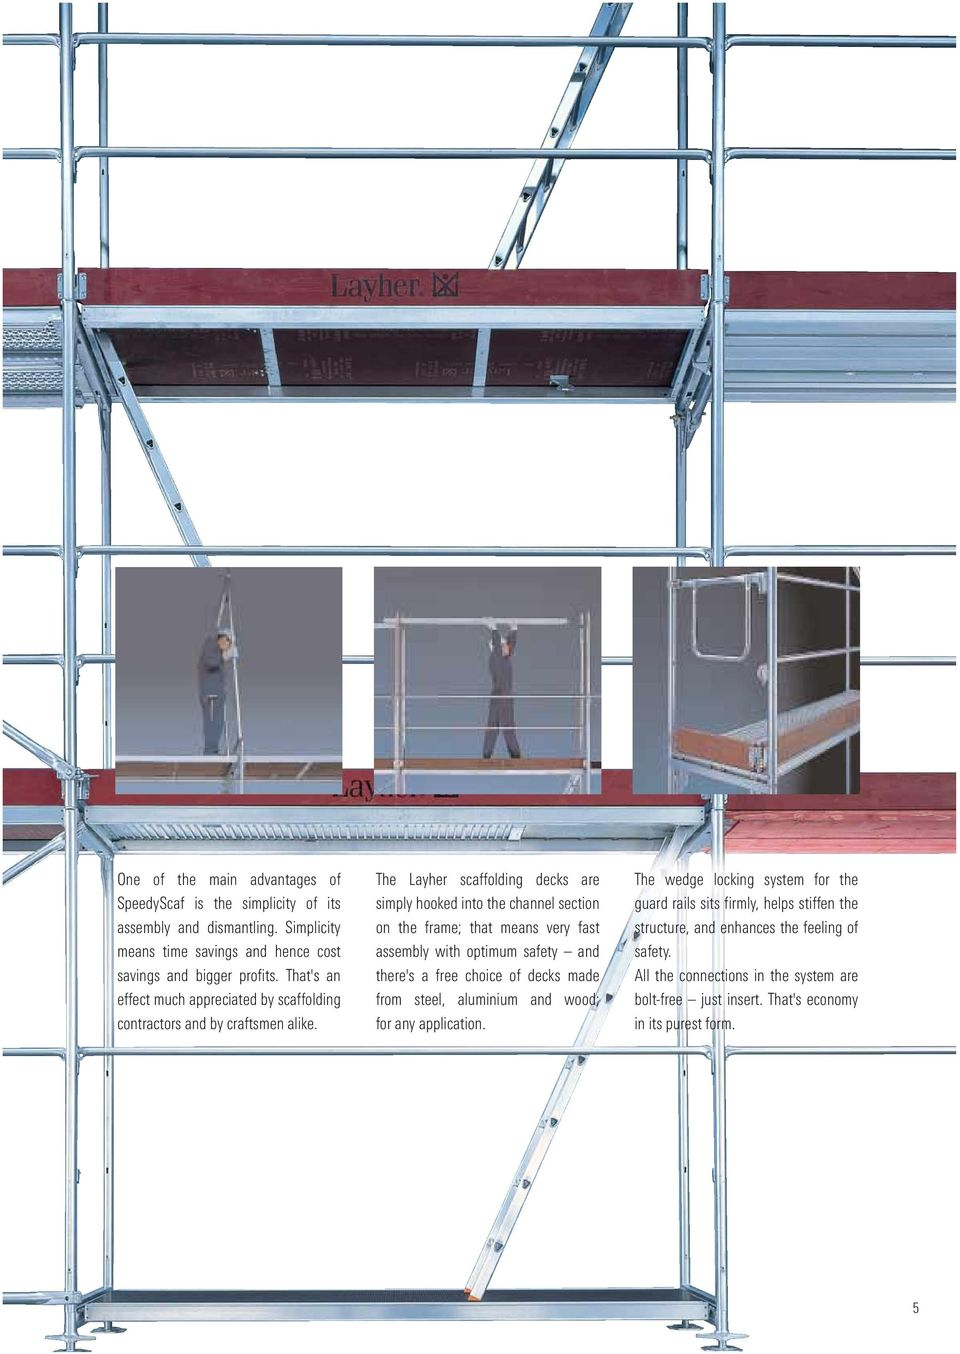 The Layher scaffolding decks are simply hooked into the channel section on the frame; that means very fast assembly with optimum safety and there's a free choice of decks